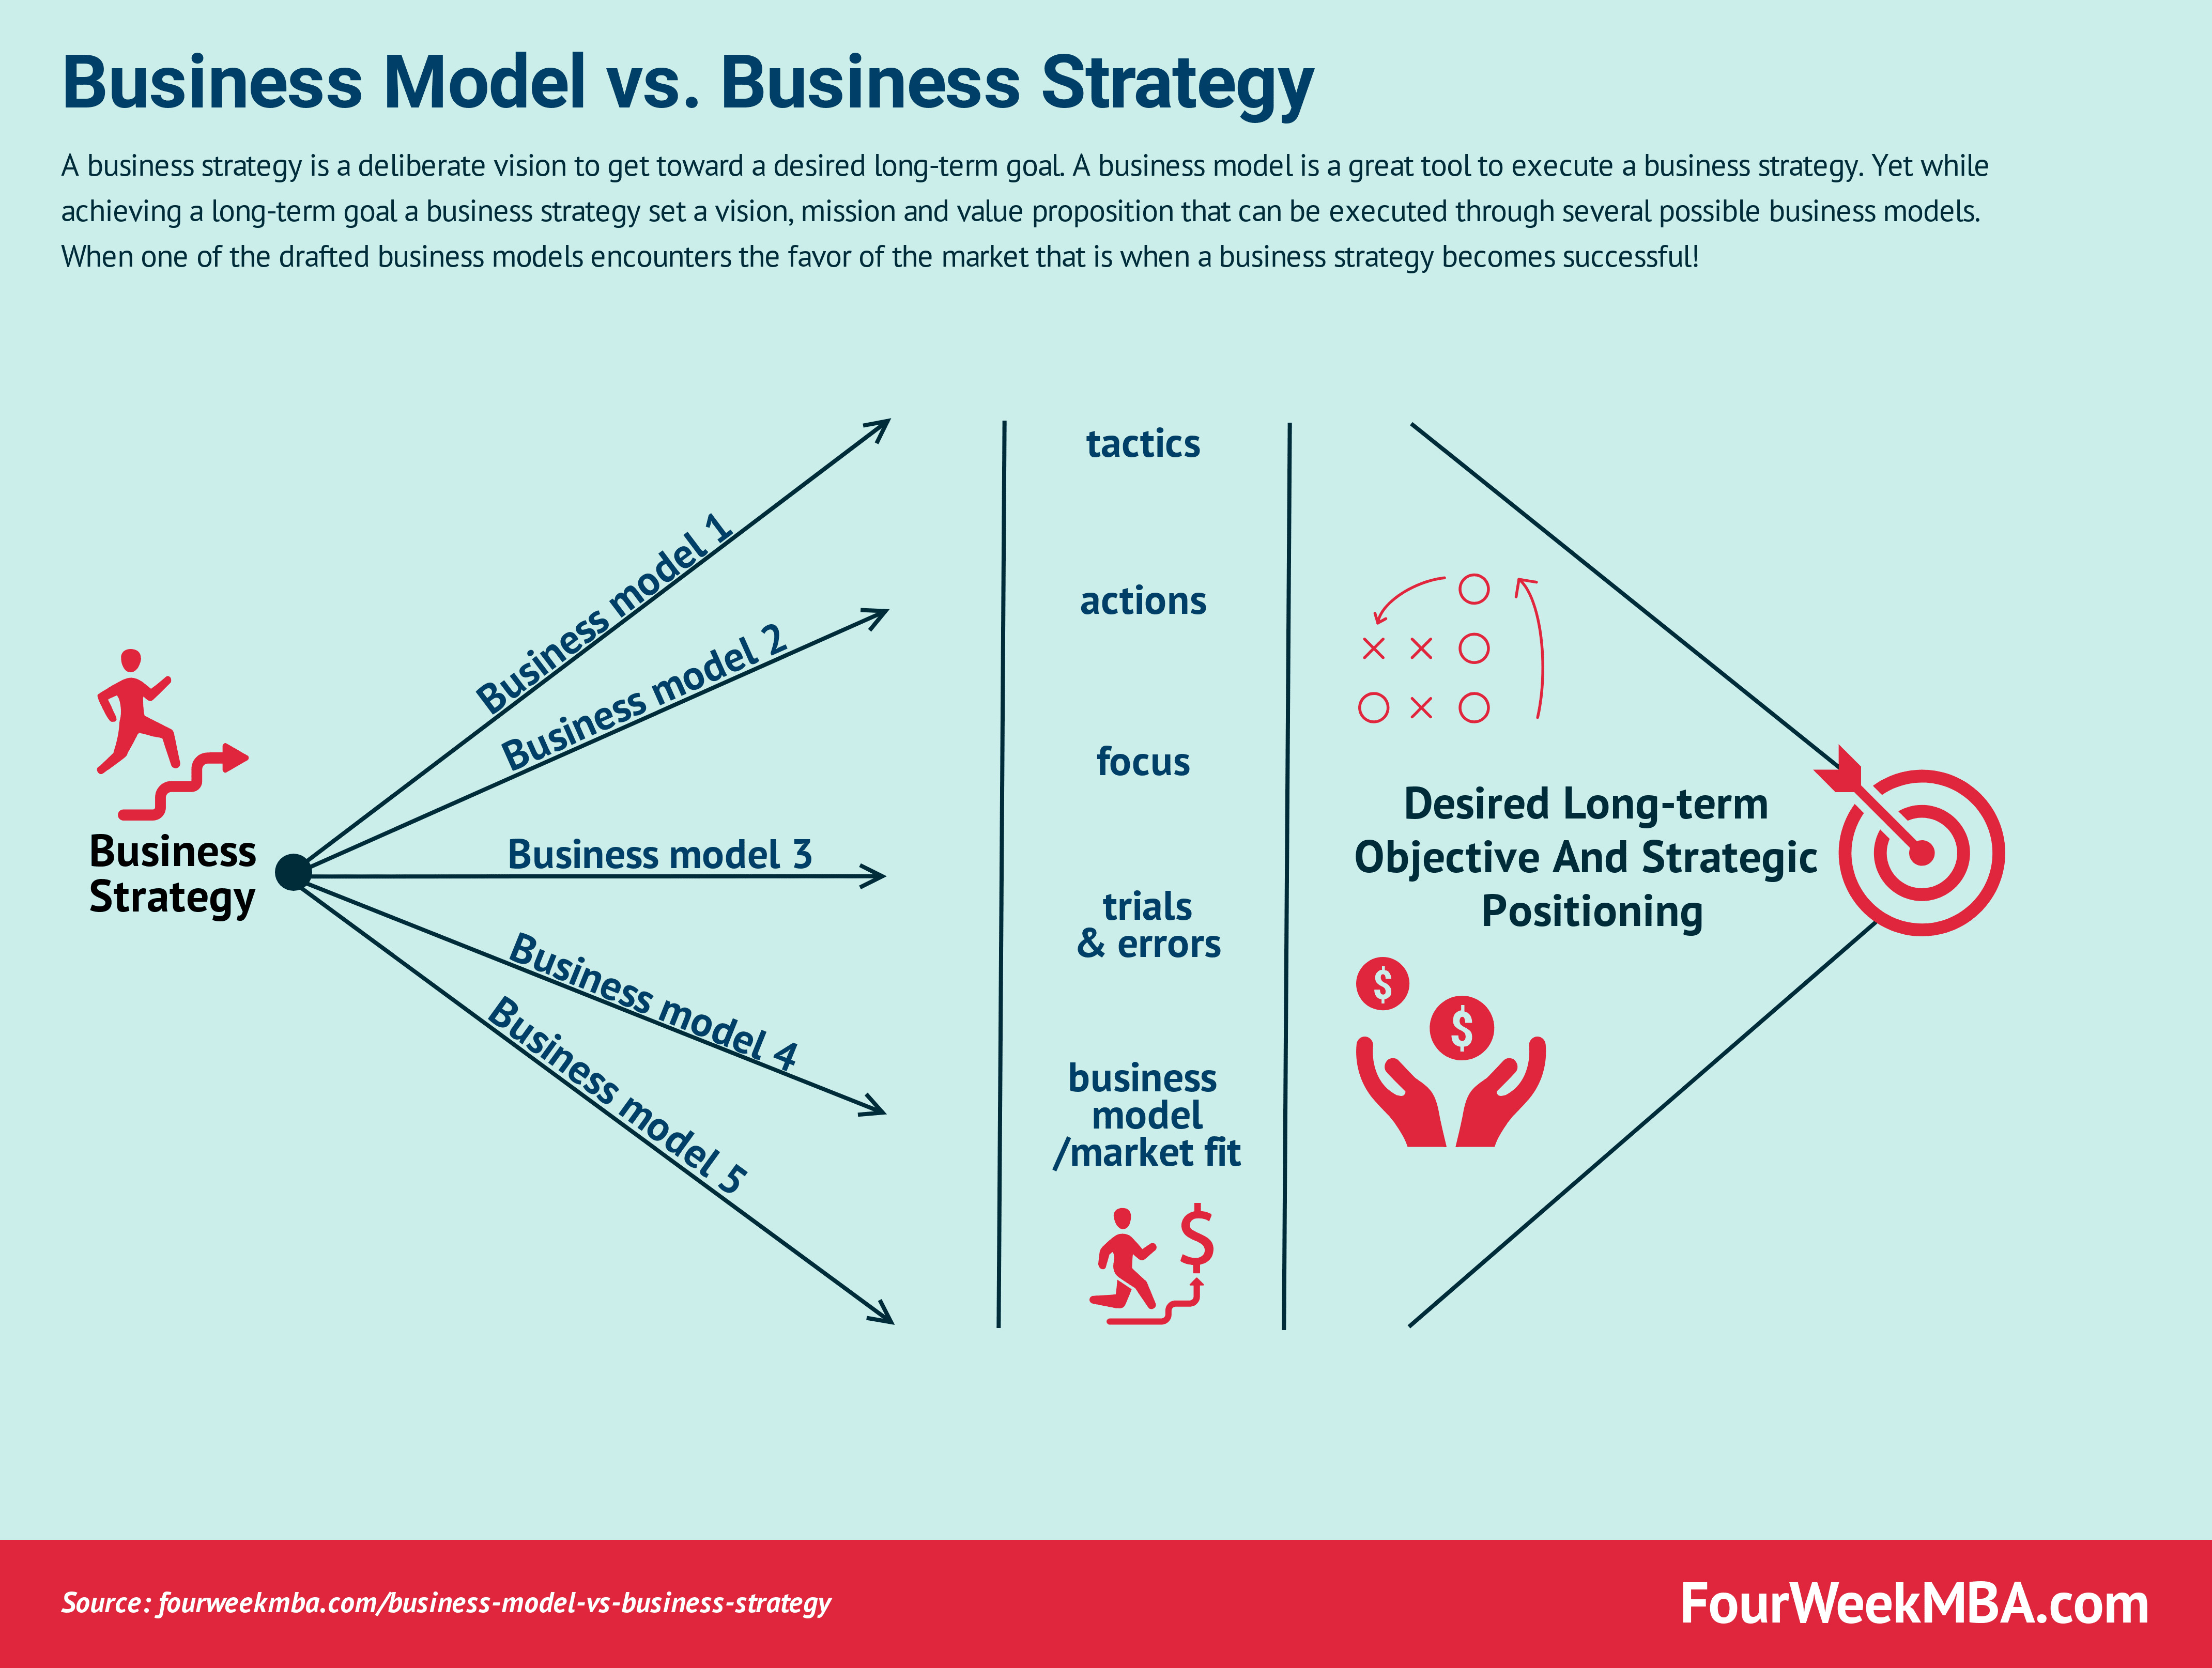 business-model-vs-business-strategy